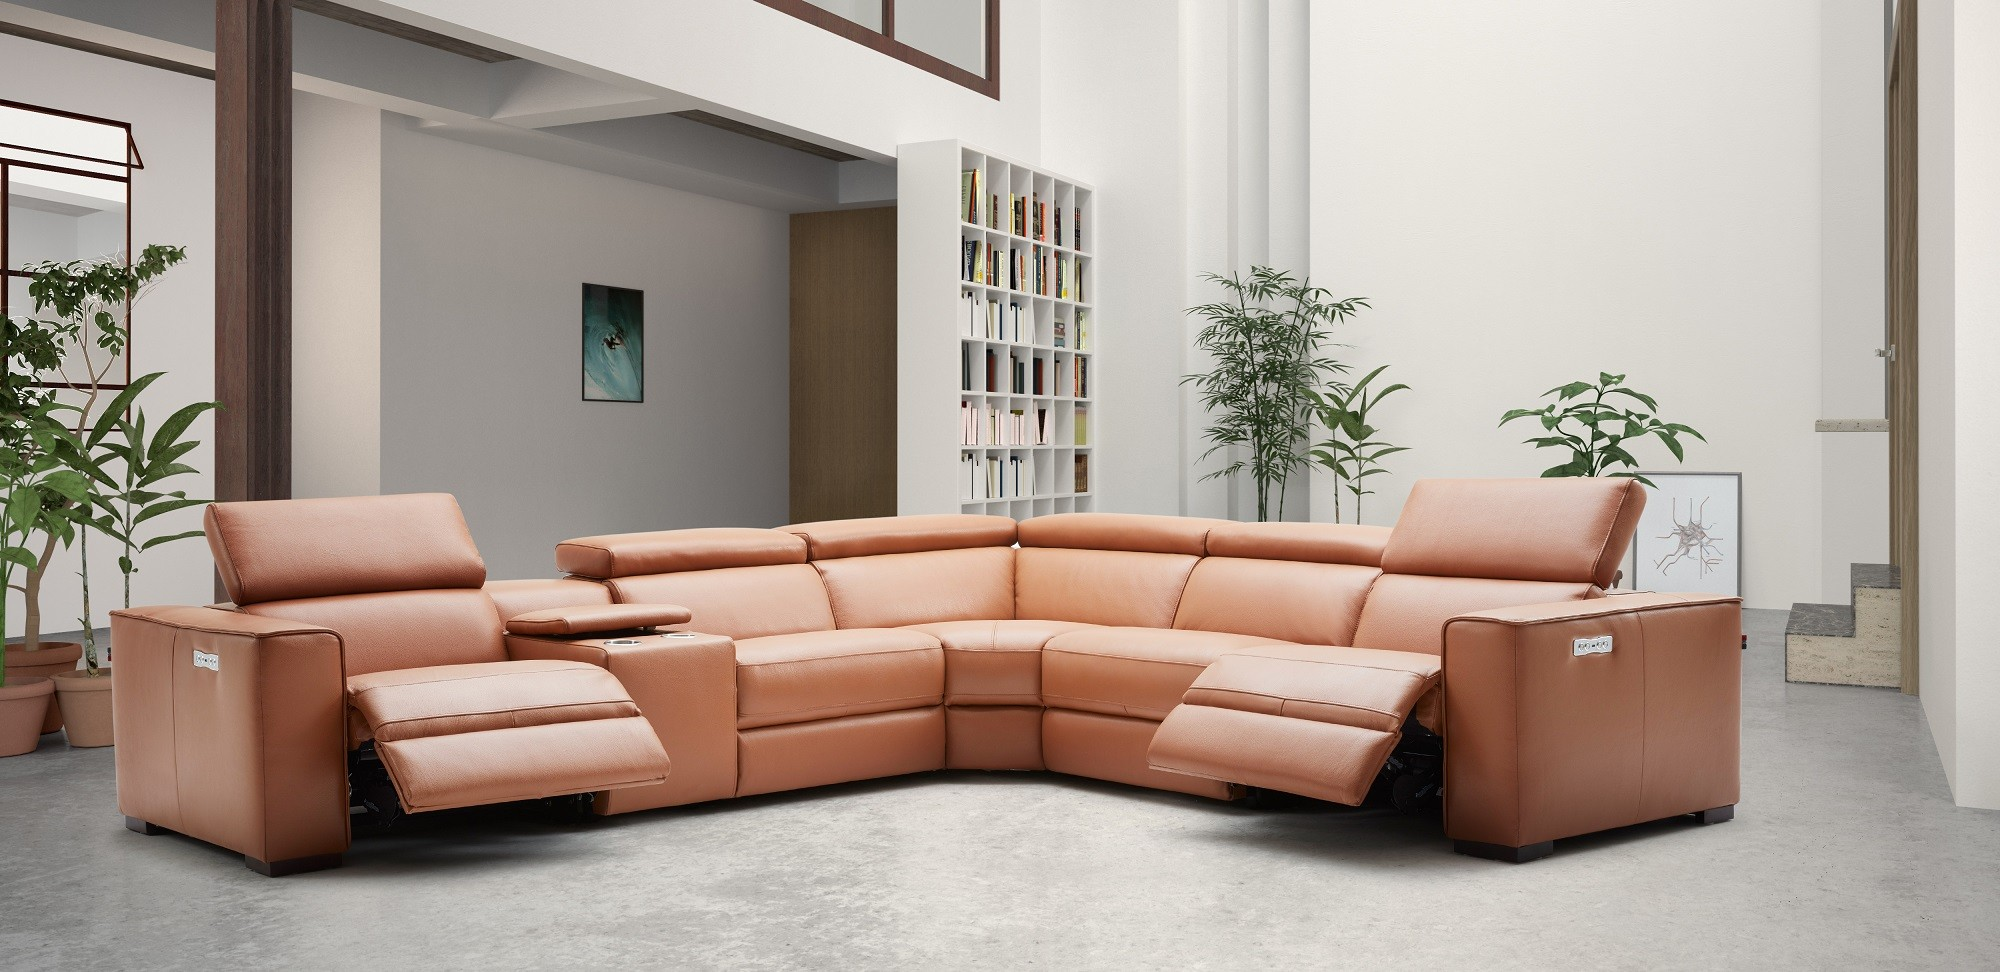 Terrific Advanced Adjustable Leather Corner Sectional Sofa With Cushions Caraccident5 Cool Chair Designs And Ideas Caraccident5Info